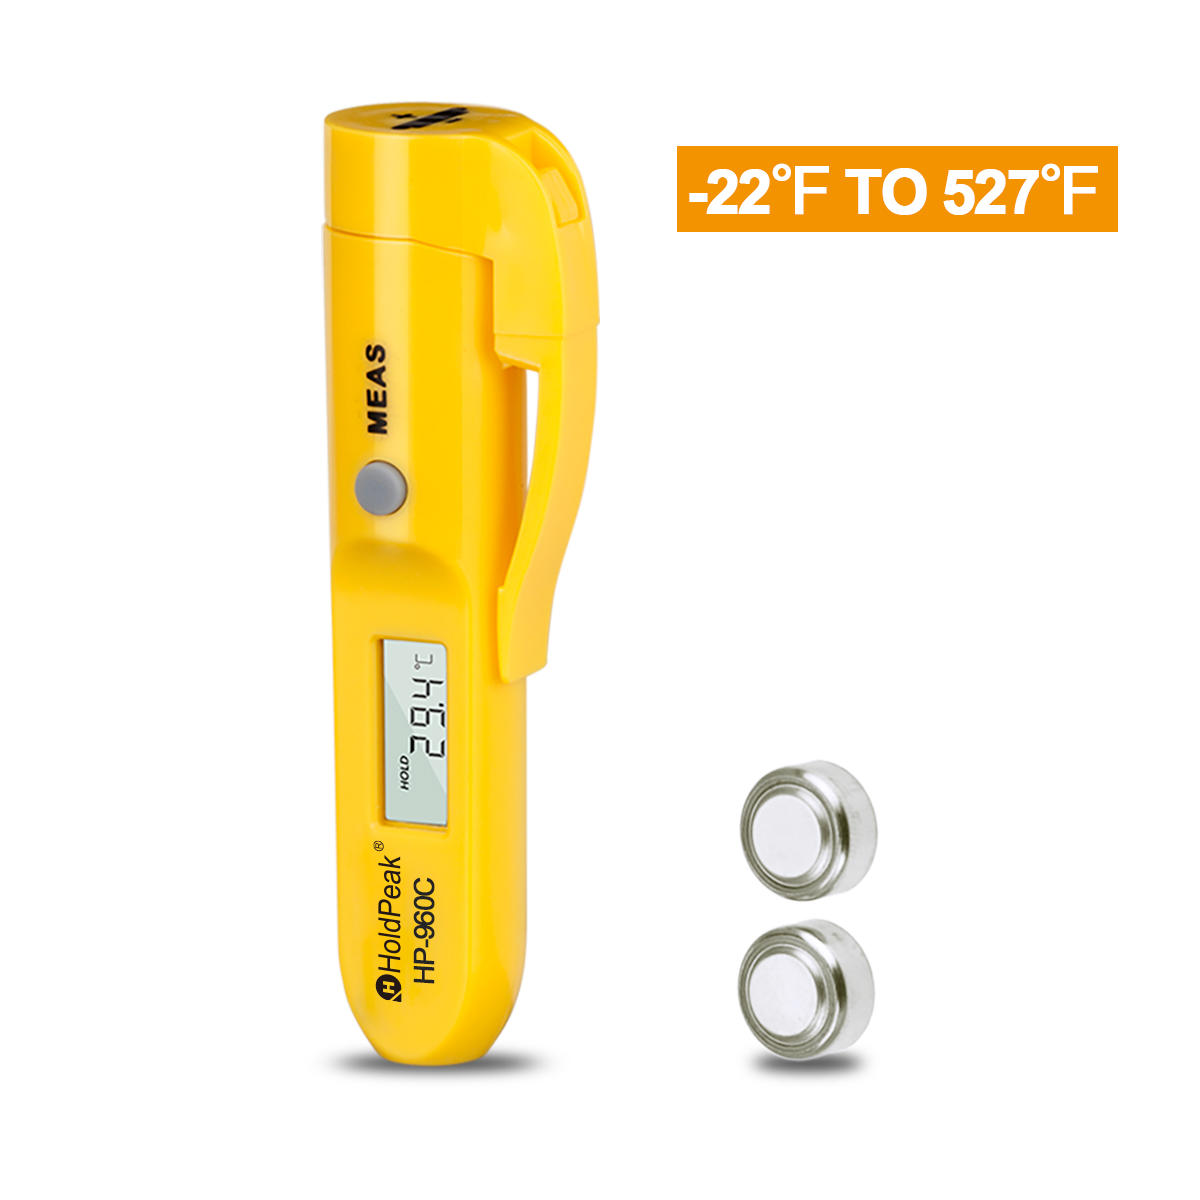 HoldPeak hp981d buy non contact thermometer manufacturers for inspection-3